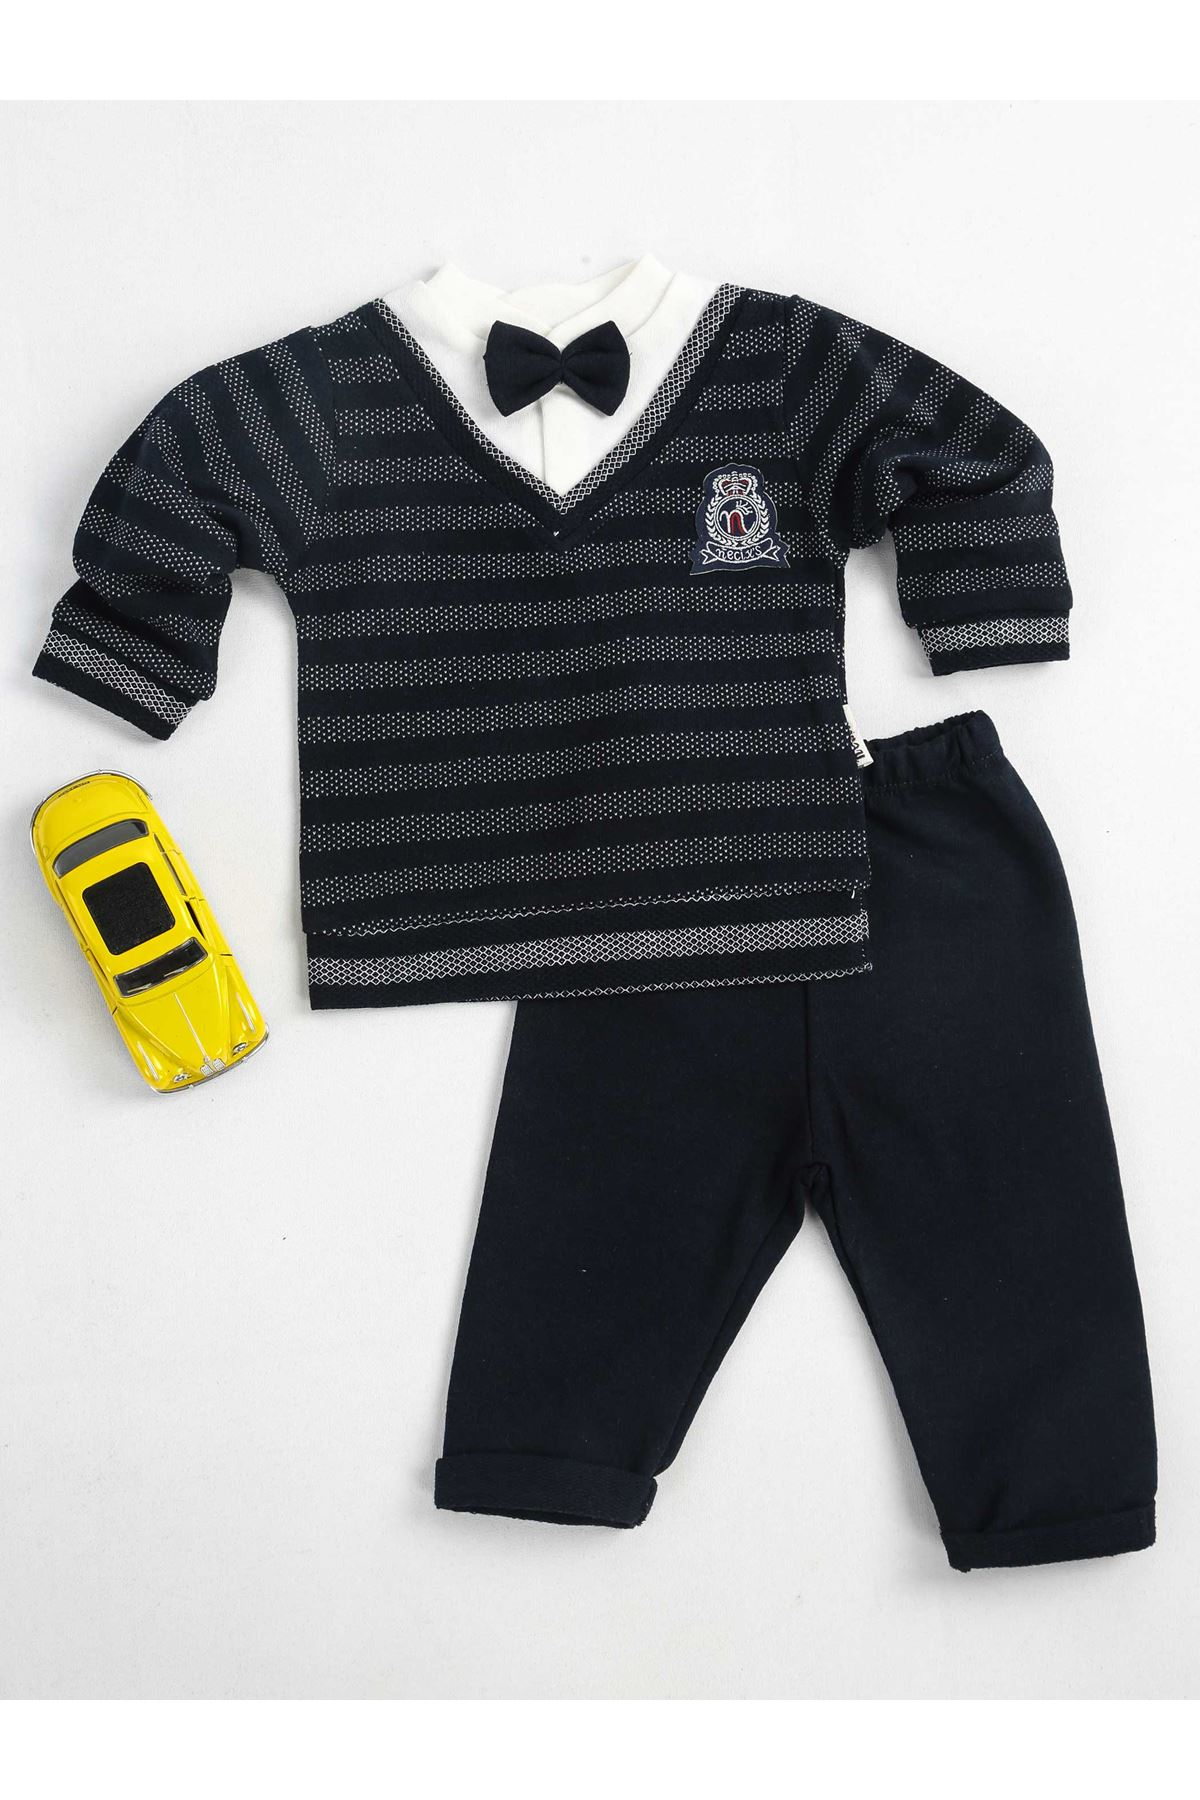 Navy blue baby bottom top 2 bow tie baby boy suit cute kids models